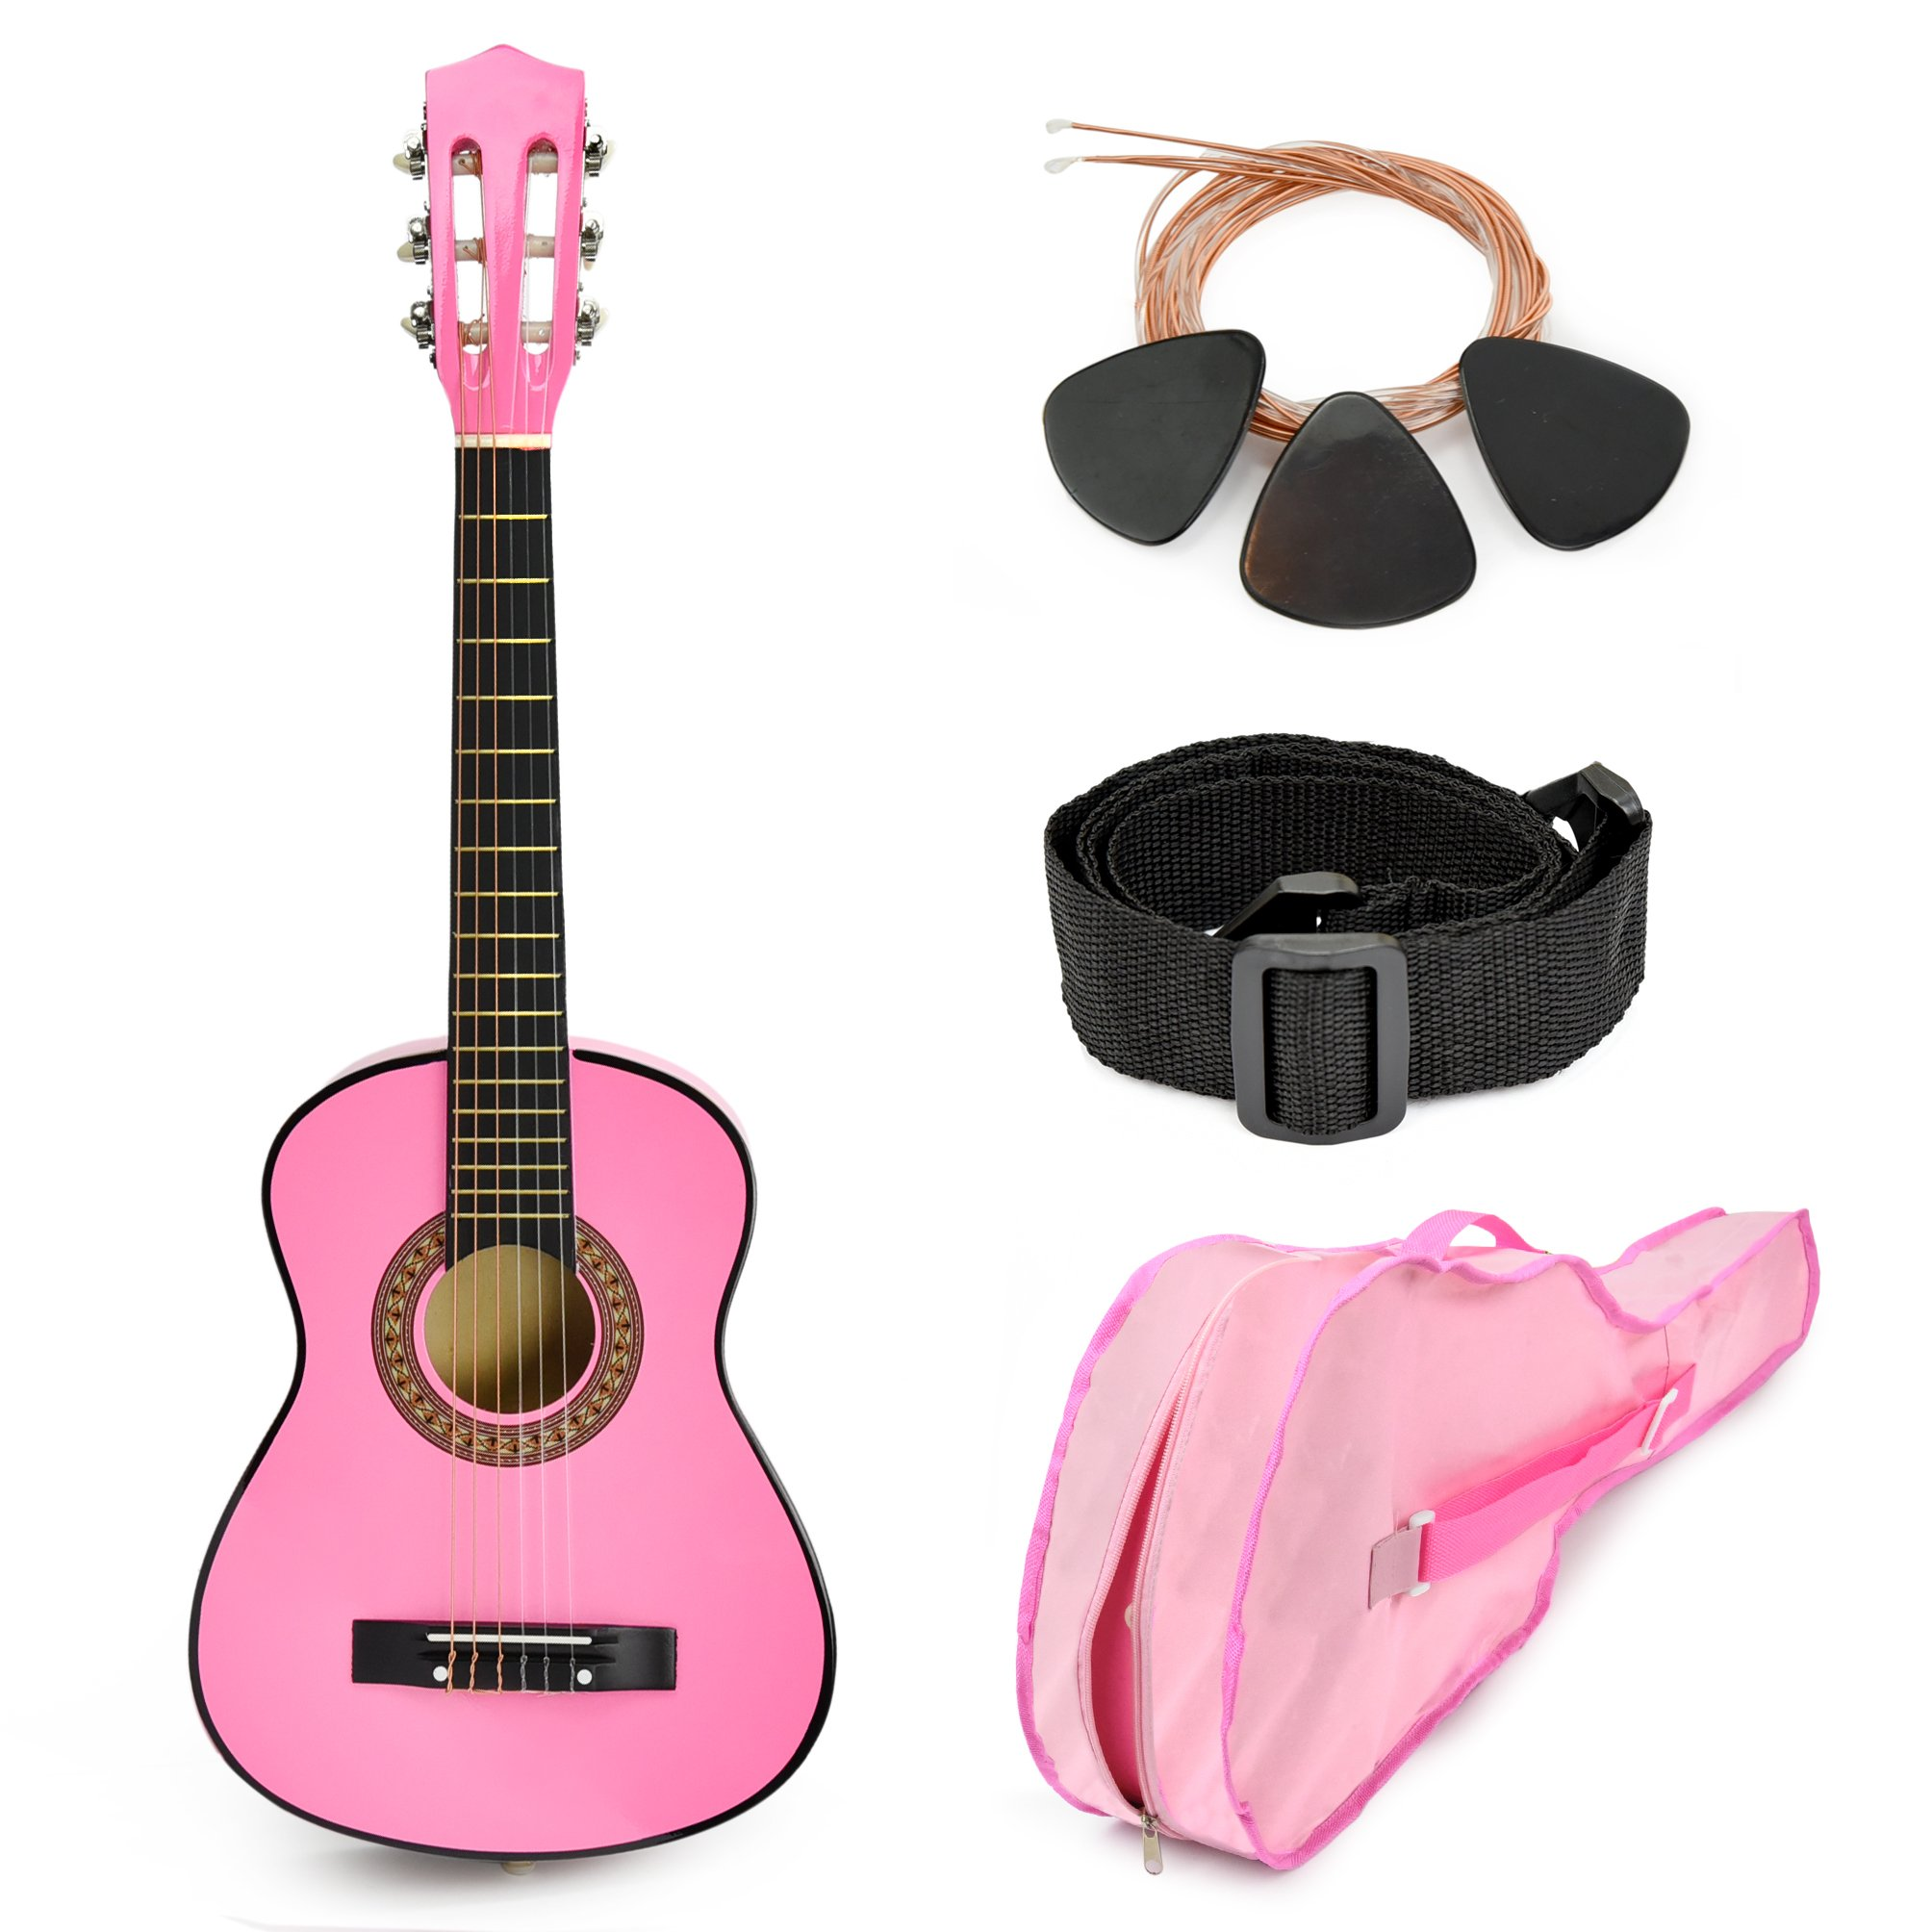 NEW! 30'' Pink Wood Guitar with Case and Accessories Great Gift for Kids / Girls / Beginners (Standard) by Master Play